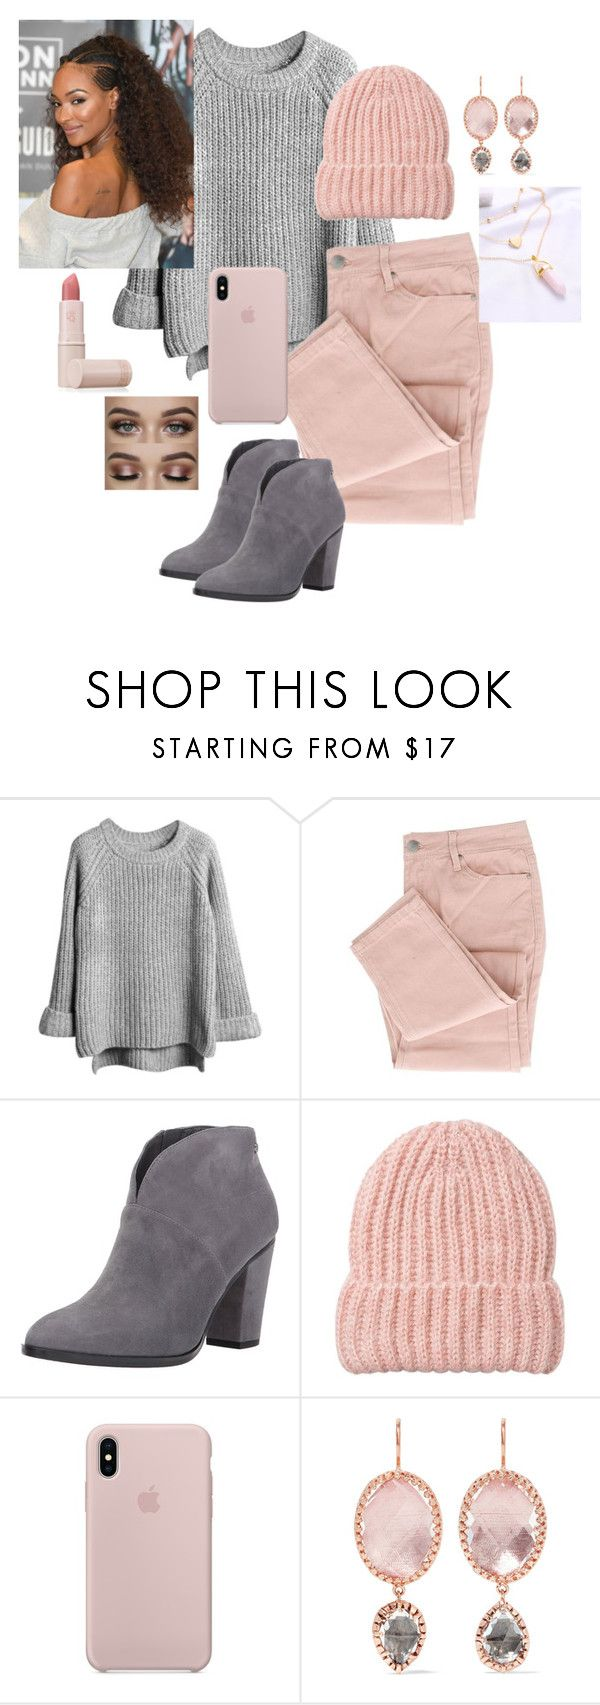 """""""Fall #2"""" by artisticstyler ❤ liked on Polyvore featuring Larkspur & Hawk, Herz, Lipstick Queen, beanies, ankleboots, pinkandgray, Oversizedsweaters and fall2017"""